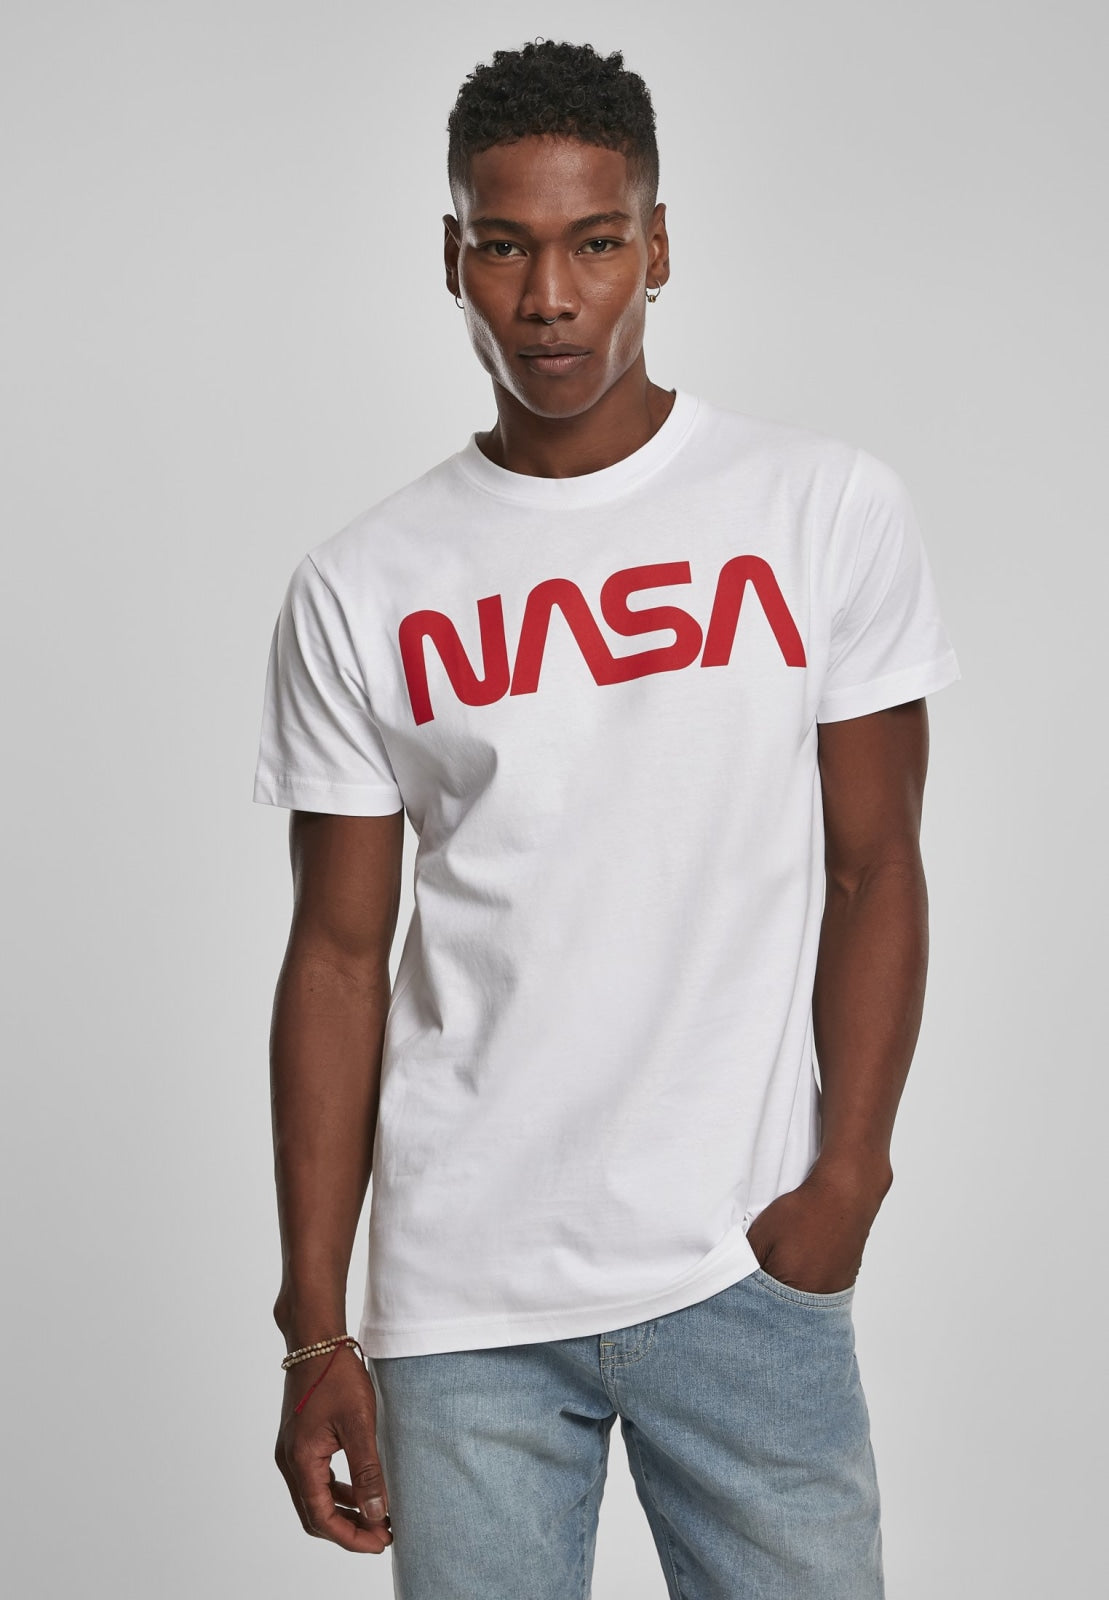 Nasa Worm Tee White / s Nasa Nasa (mt De)